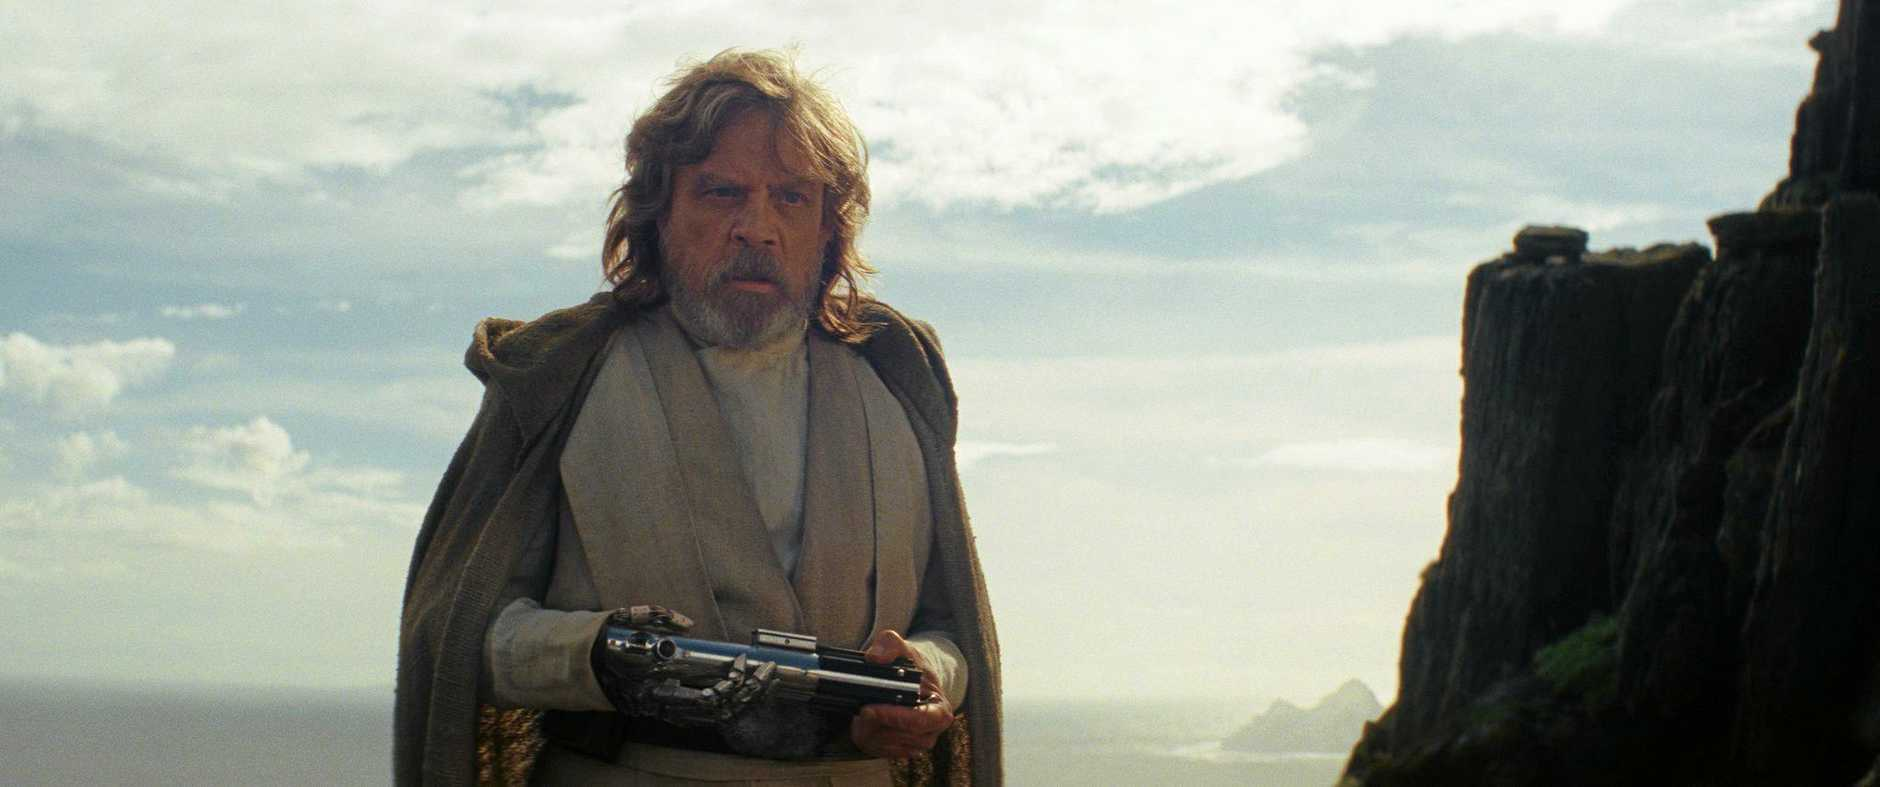 Mark Hamill as Luke Skywalker in a scene from the movie Star Wars: The Last Jedi. Supplied by Disney.